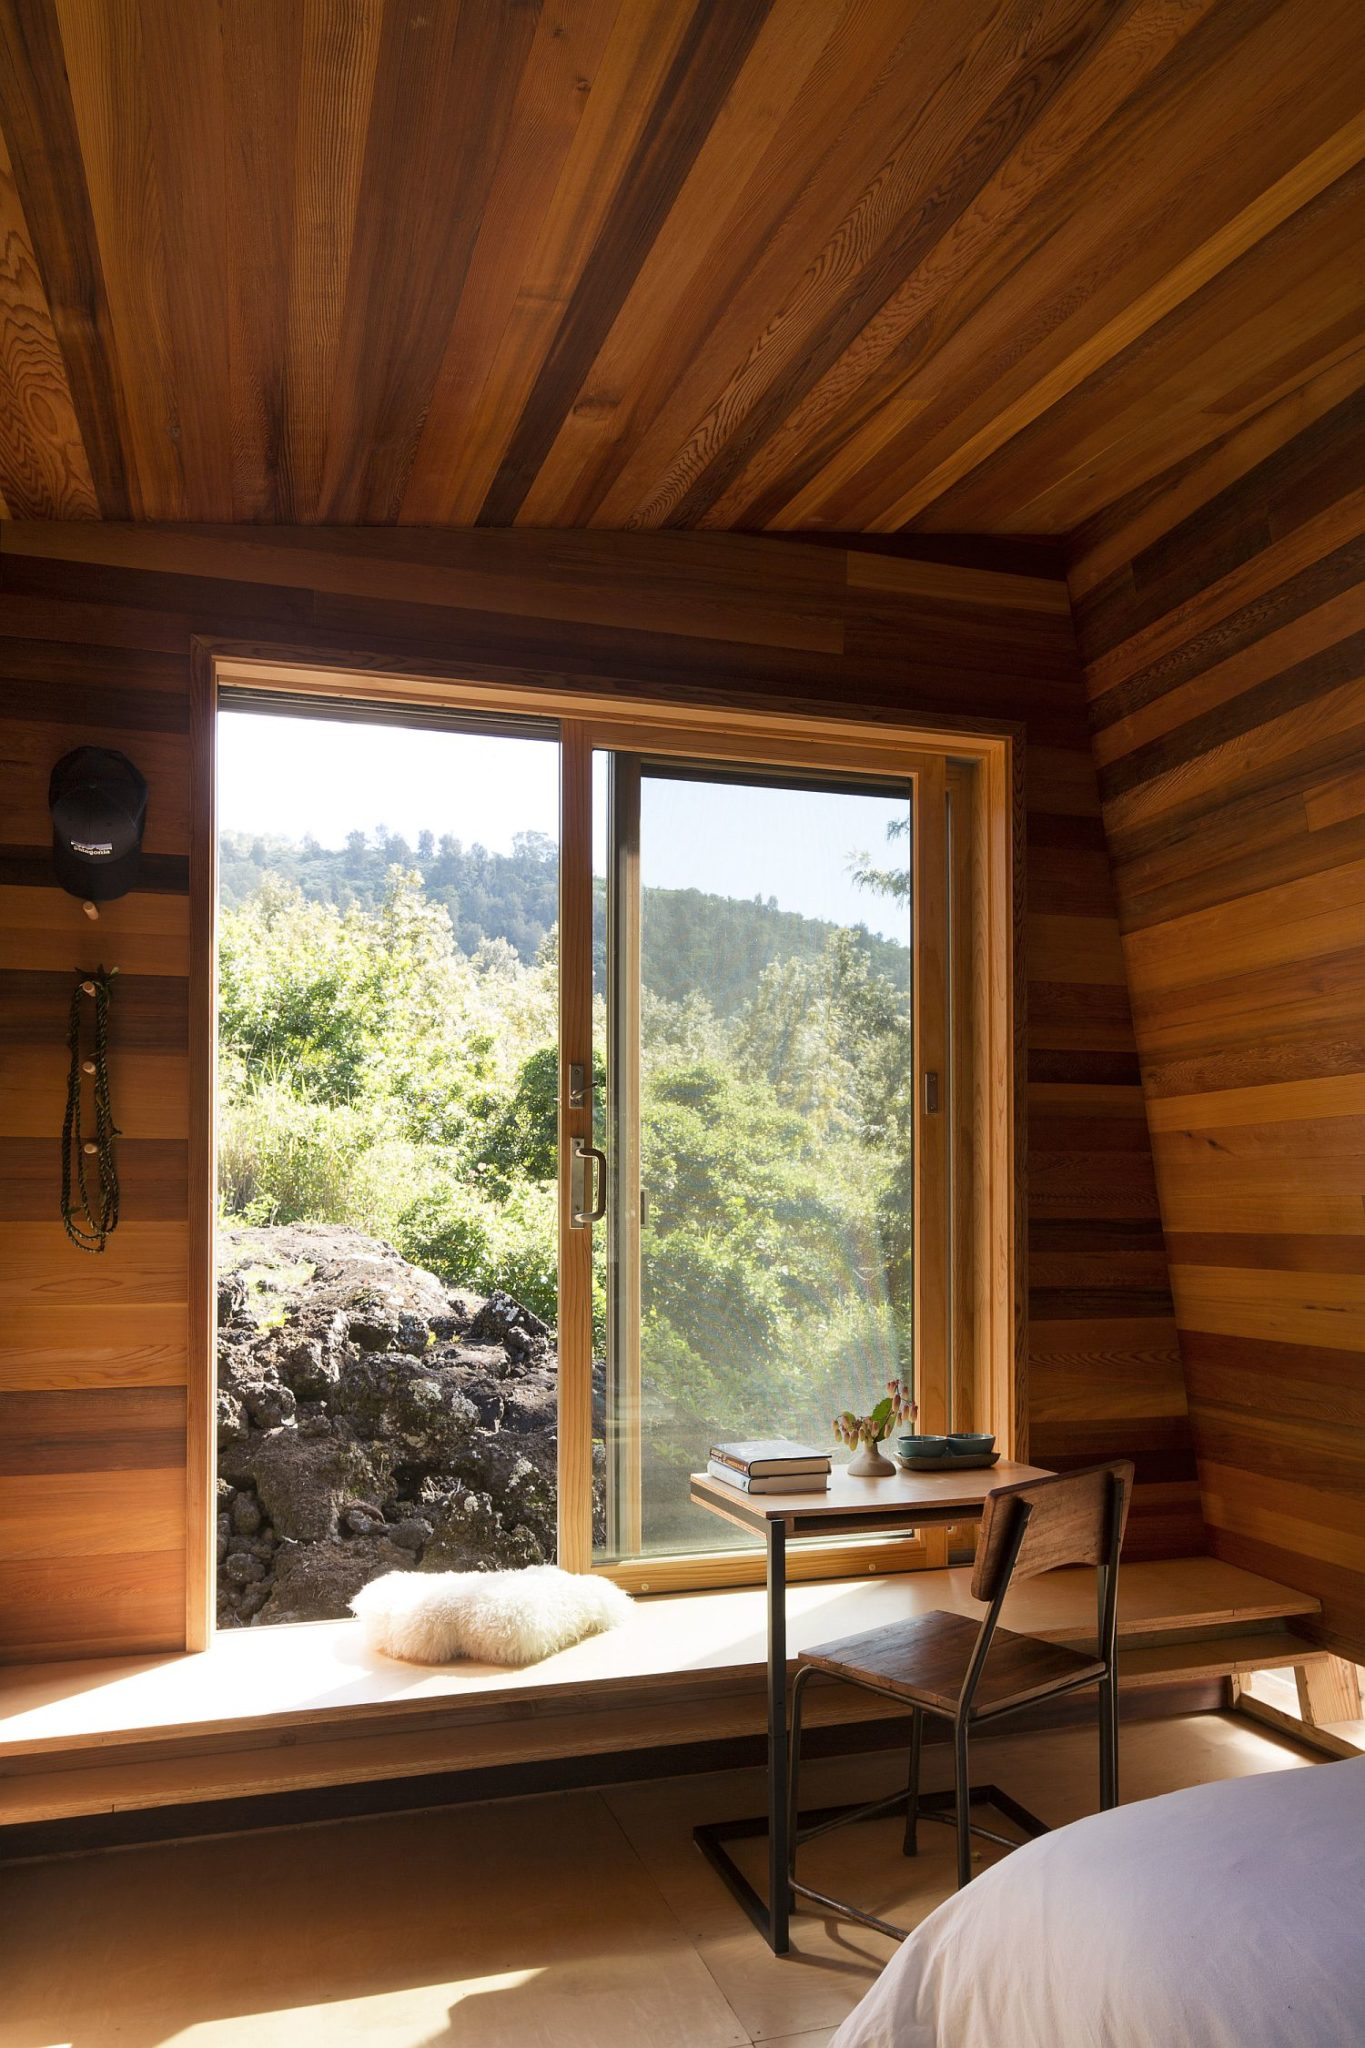 Large window of the bedroom offers wonderful views of the landscape outside